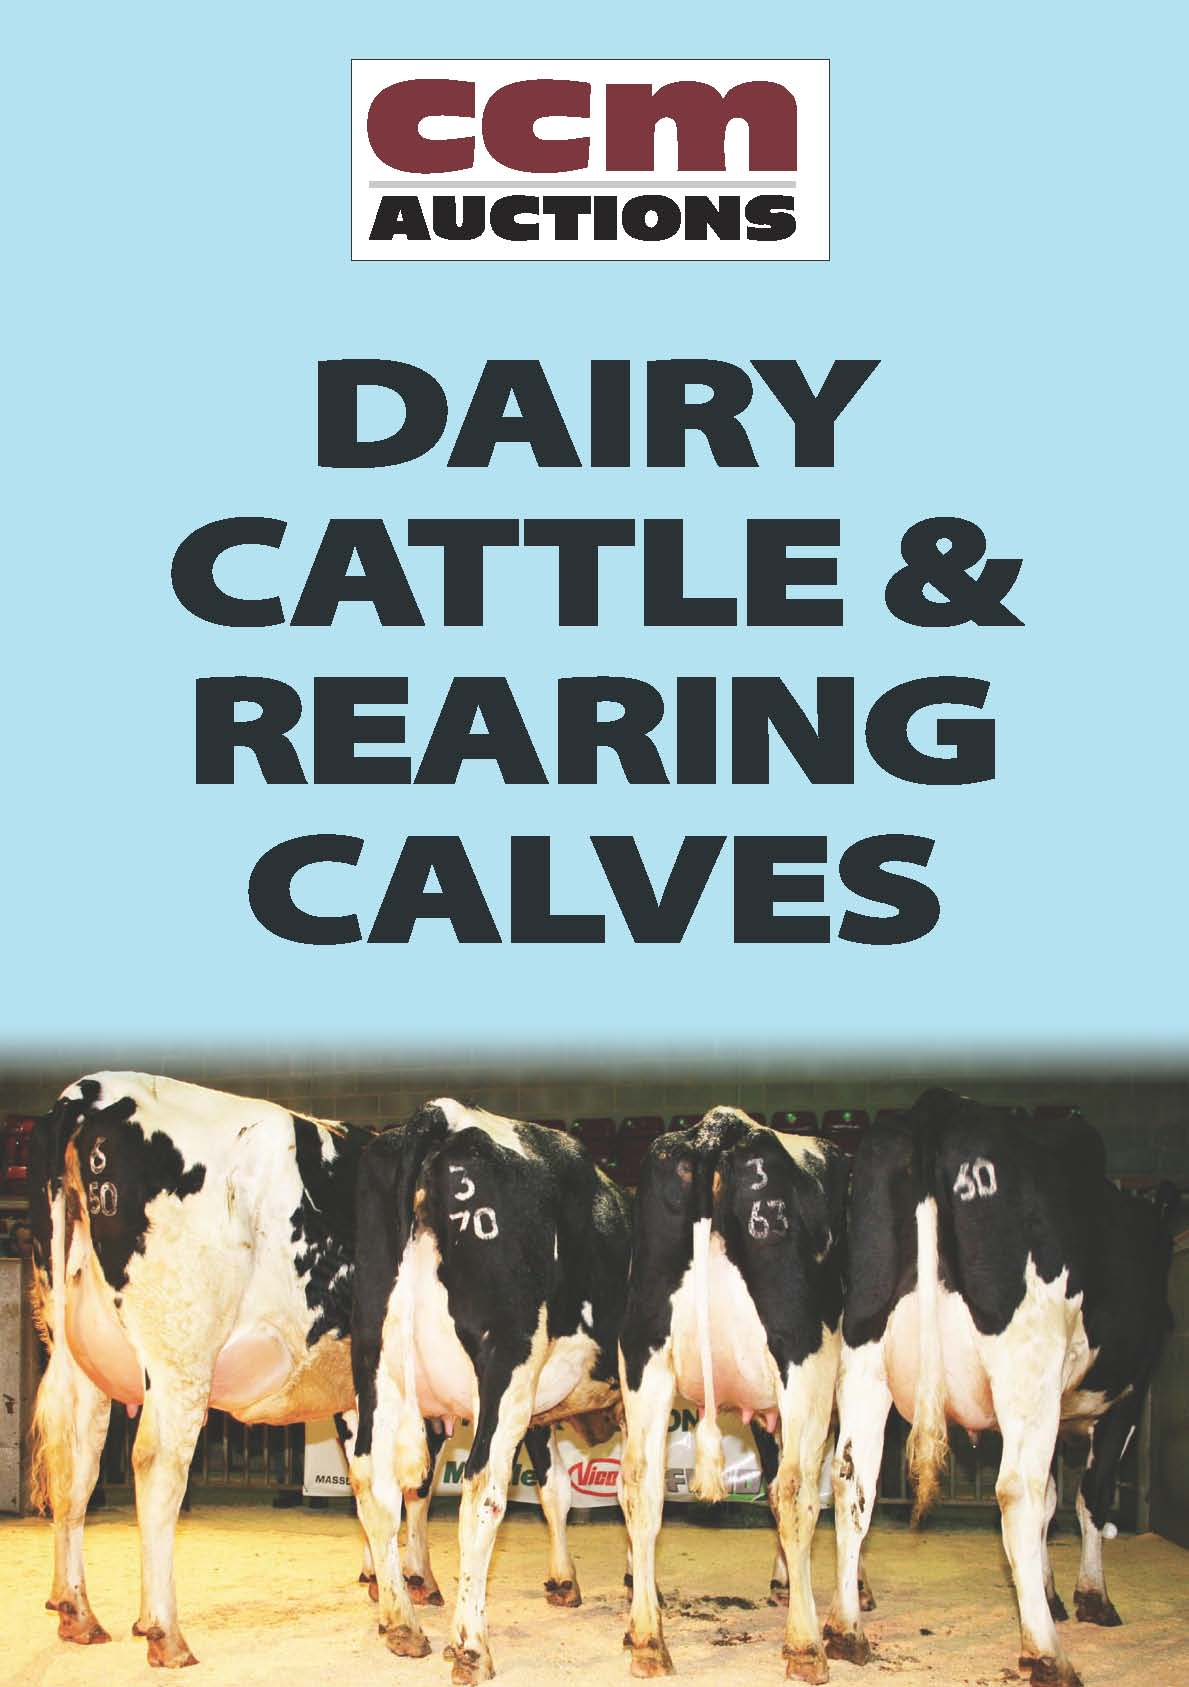 CALF SHOW - MONDAY 4TH JANUARY 2016